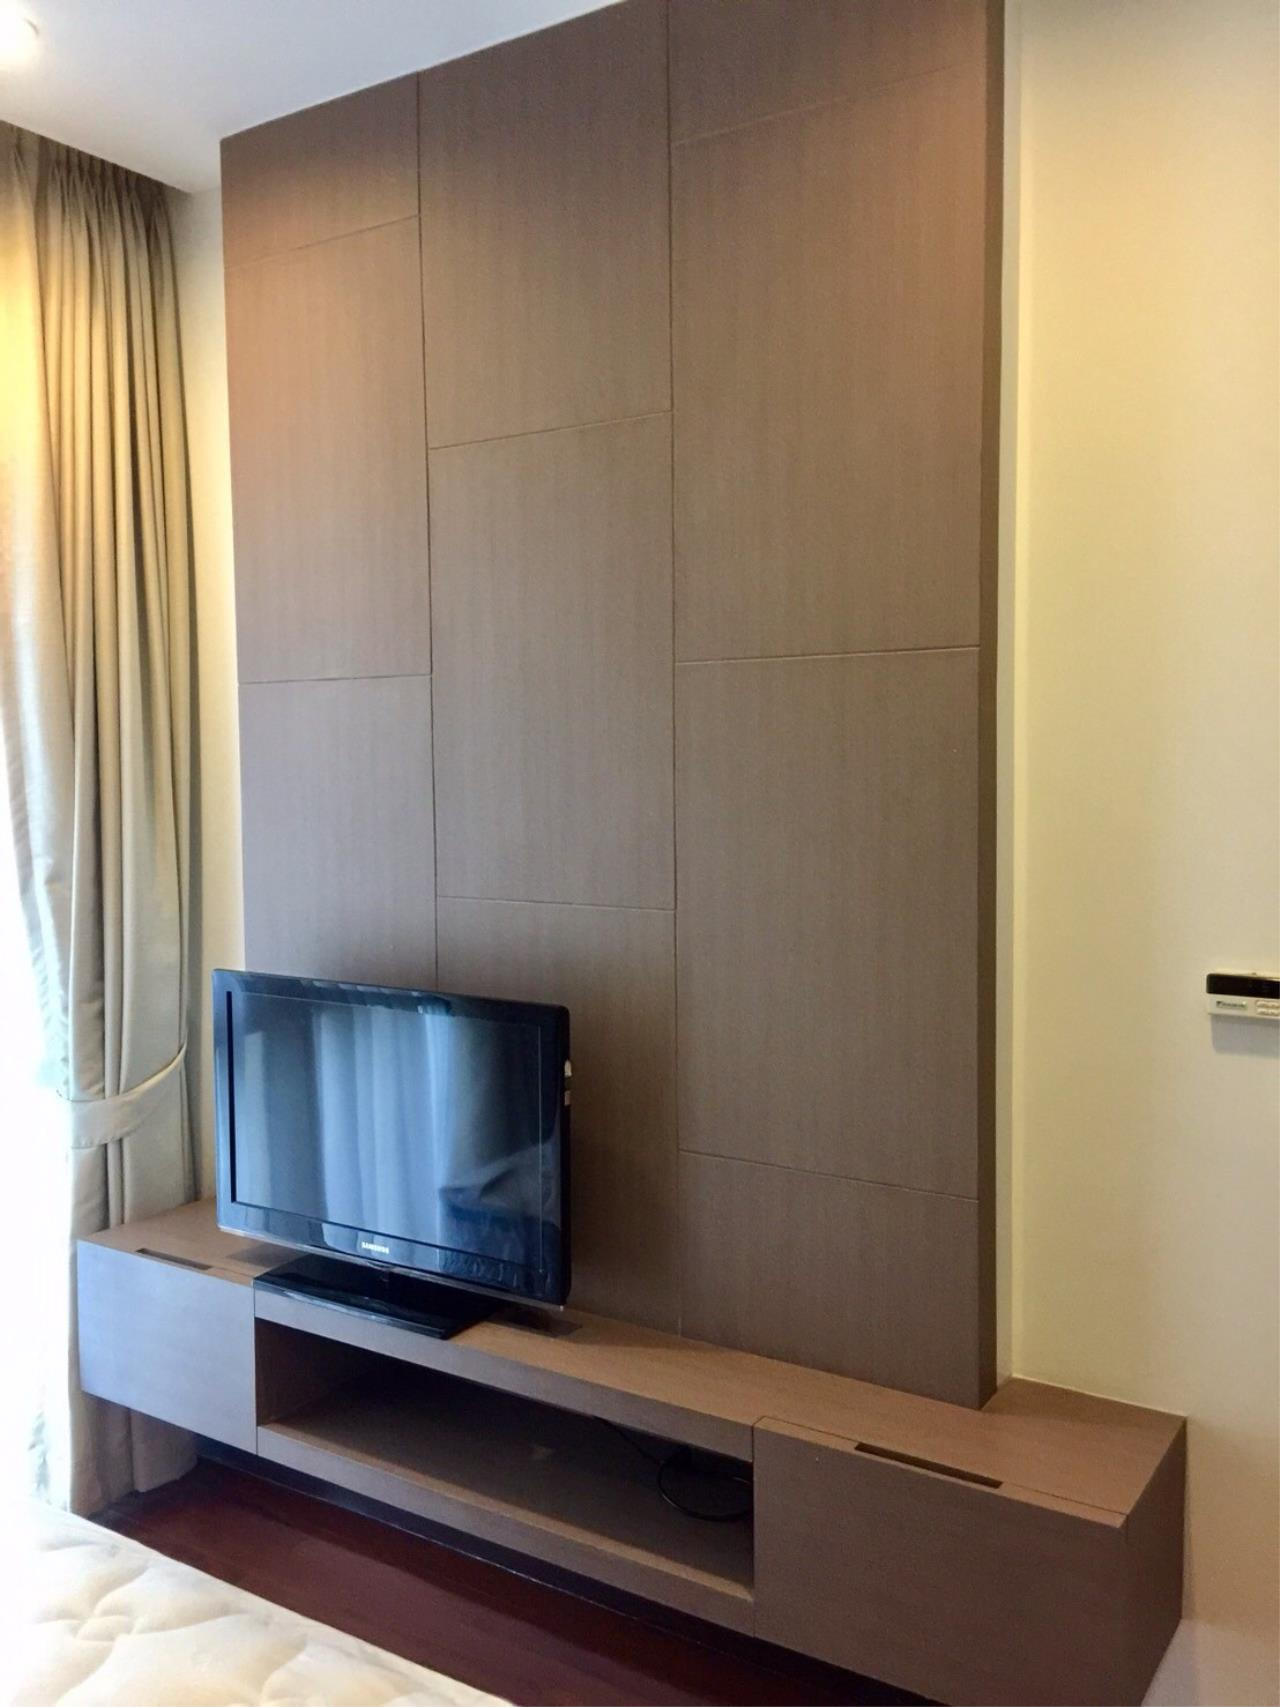 Piri Property Agency's Exclusive Living on Soi 11 - Prime 11 - 2 Bedrooms 7